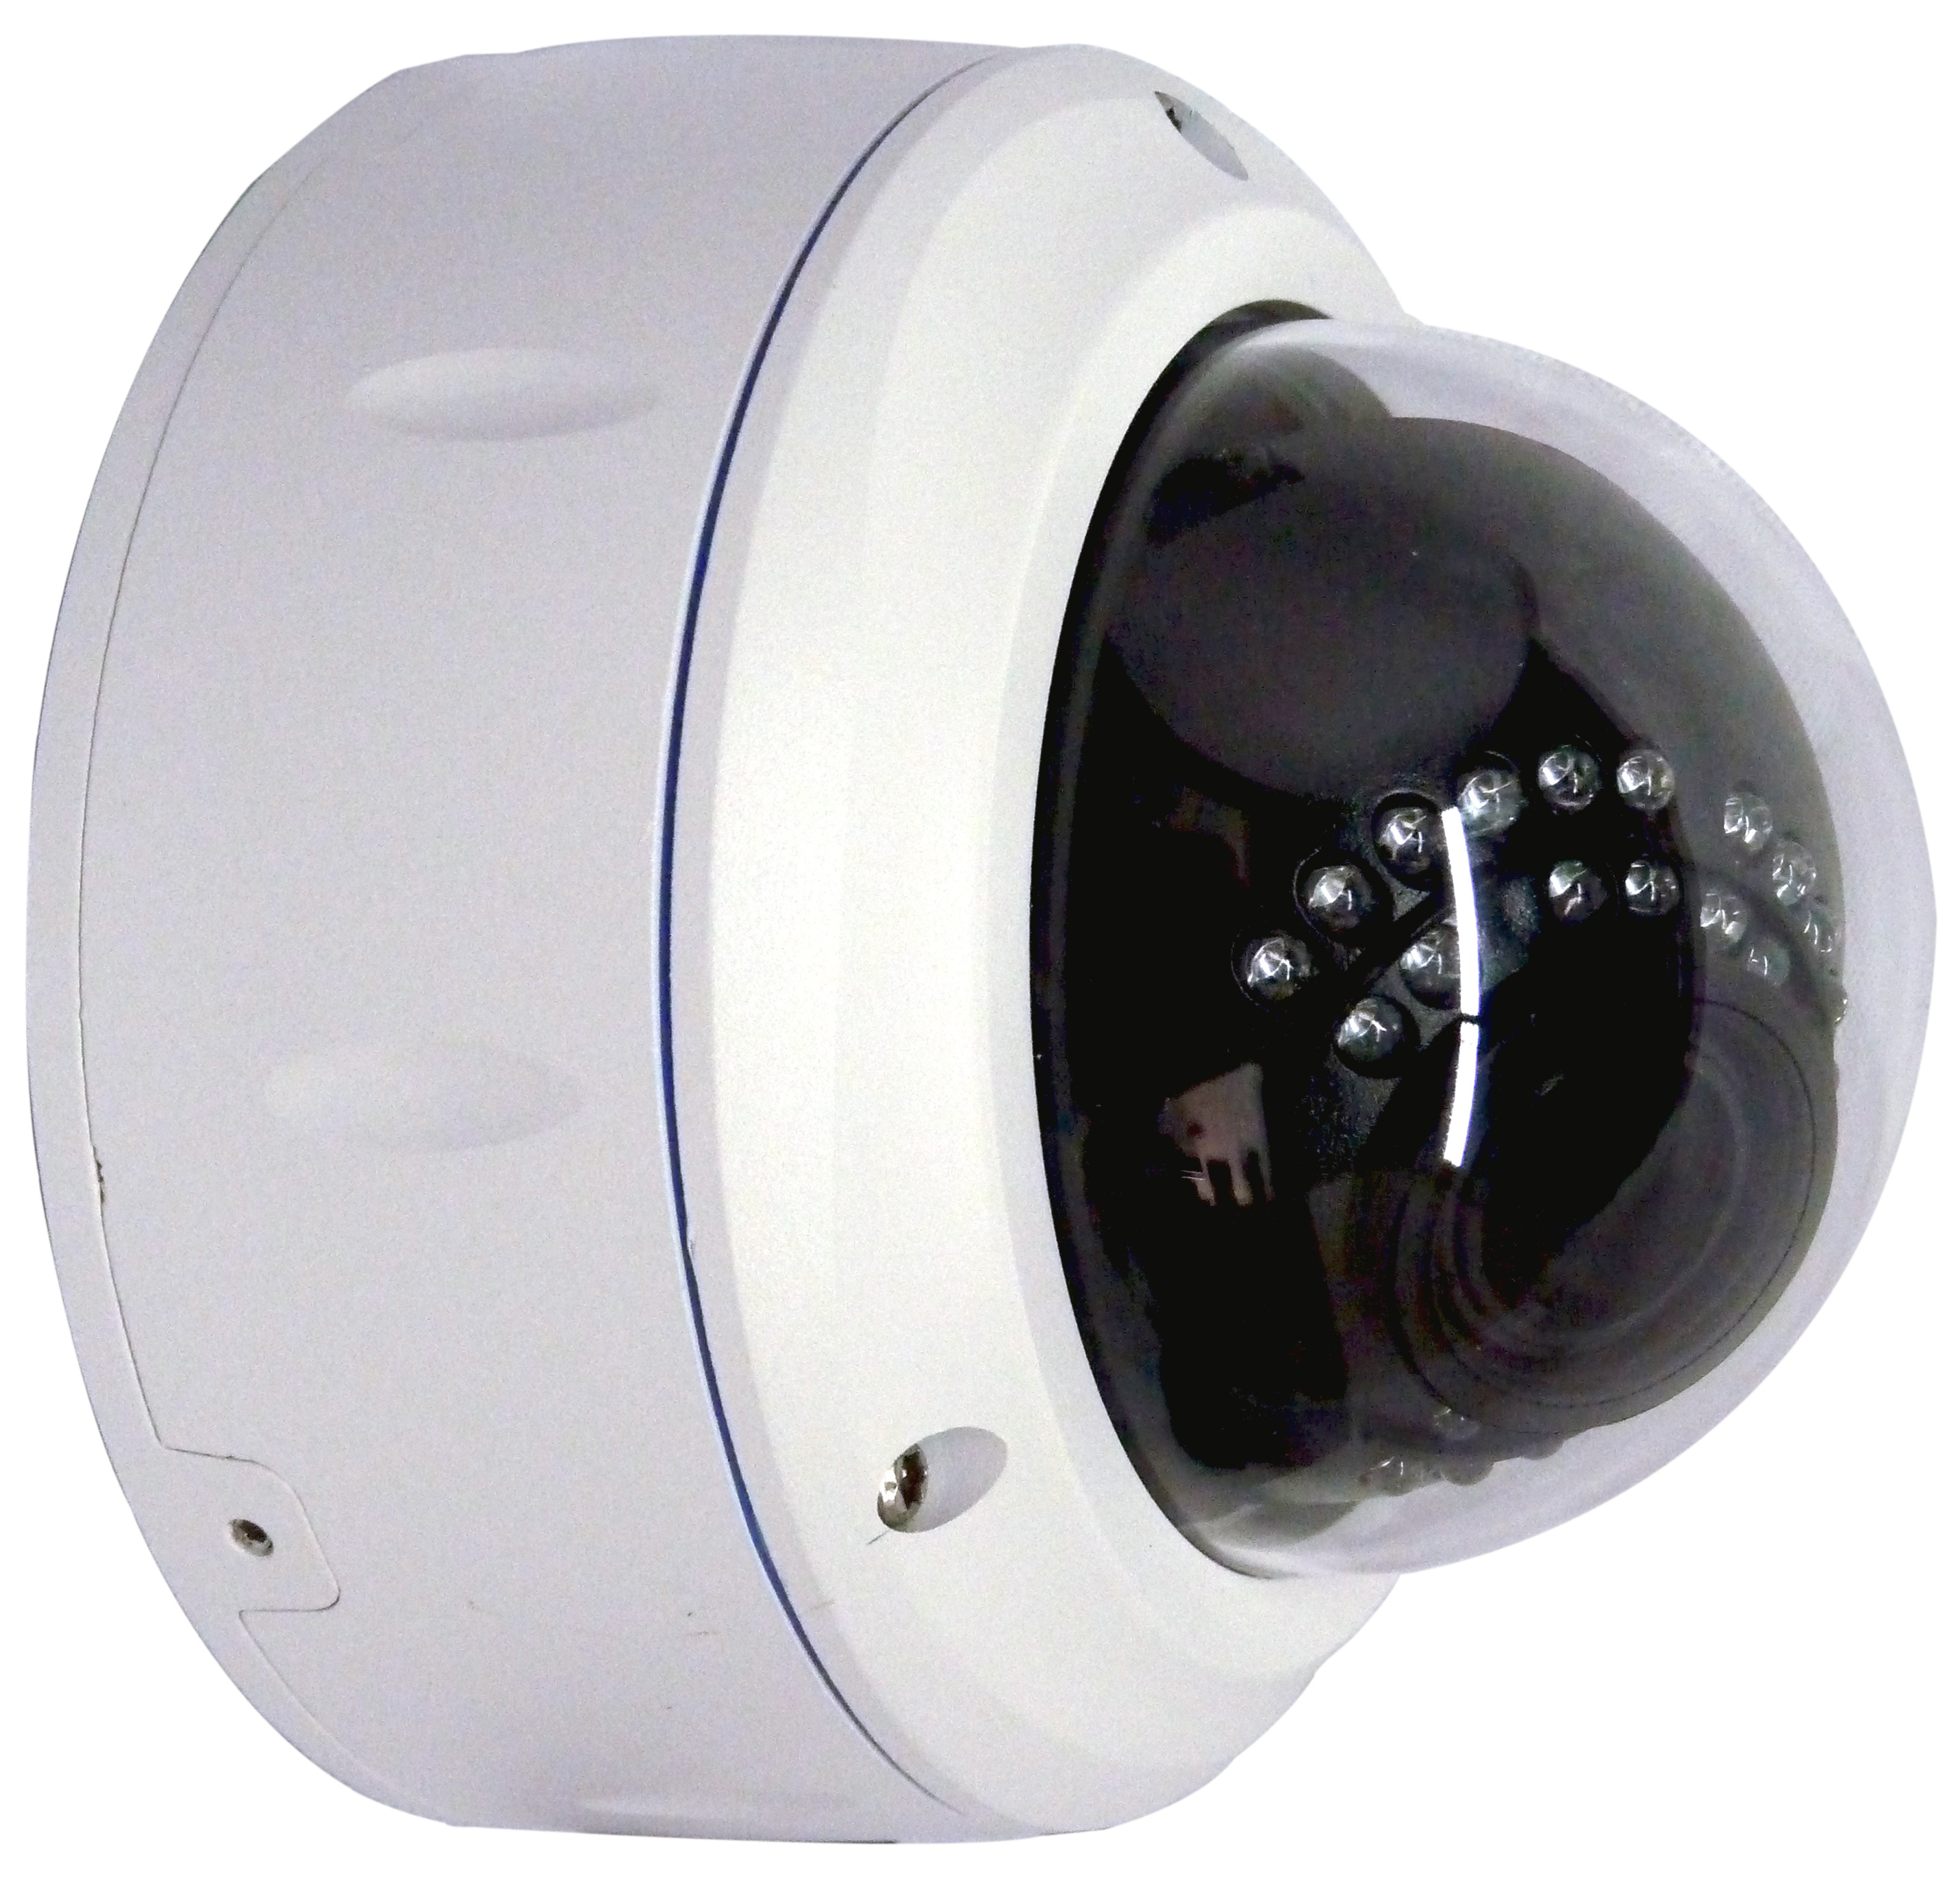 Image for DBS 66W - 700TVL CCTV Dome Security Camera - 1/3'' Sony Super HAD CCD II